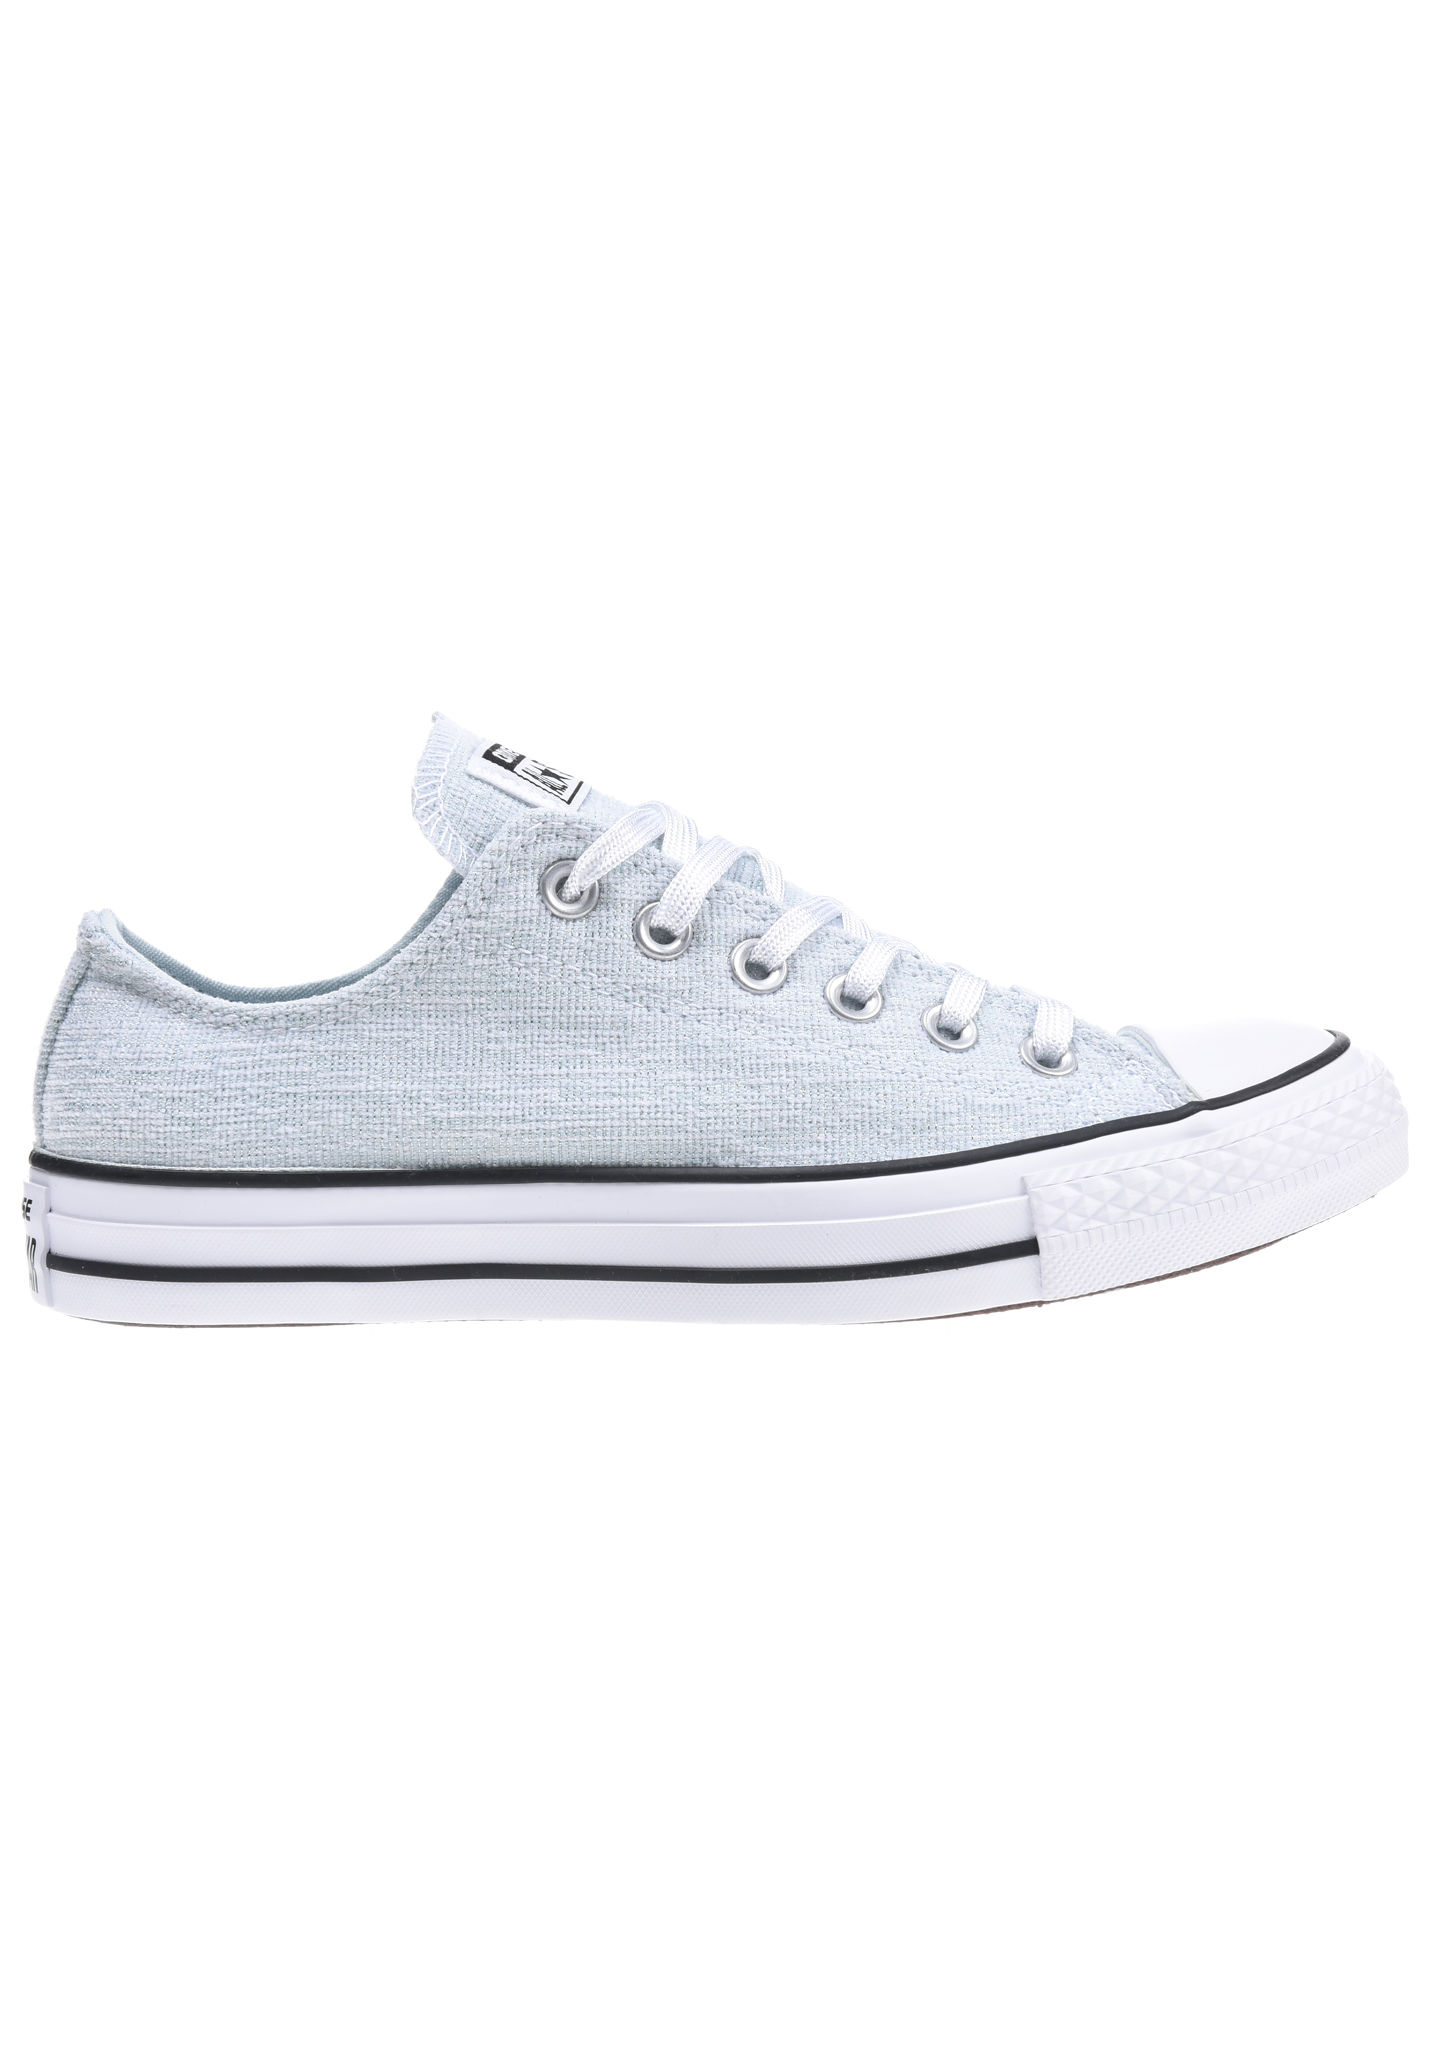 8df0b0197b0748 Converse Chuck Taylor All Star Sparkle Knit Ox - Sneakers for Women - Blue  - Planet Sports